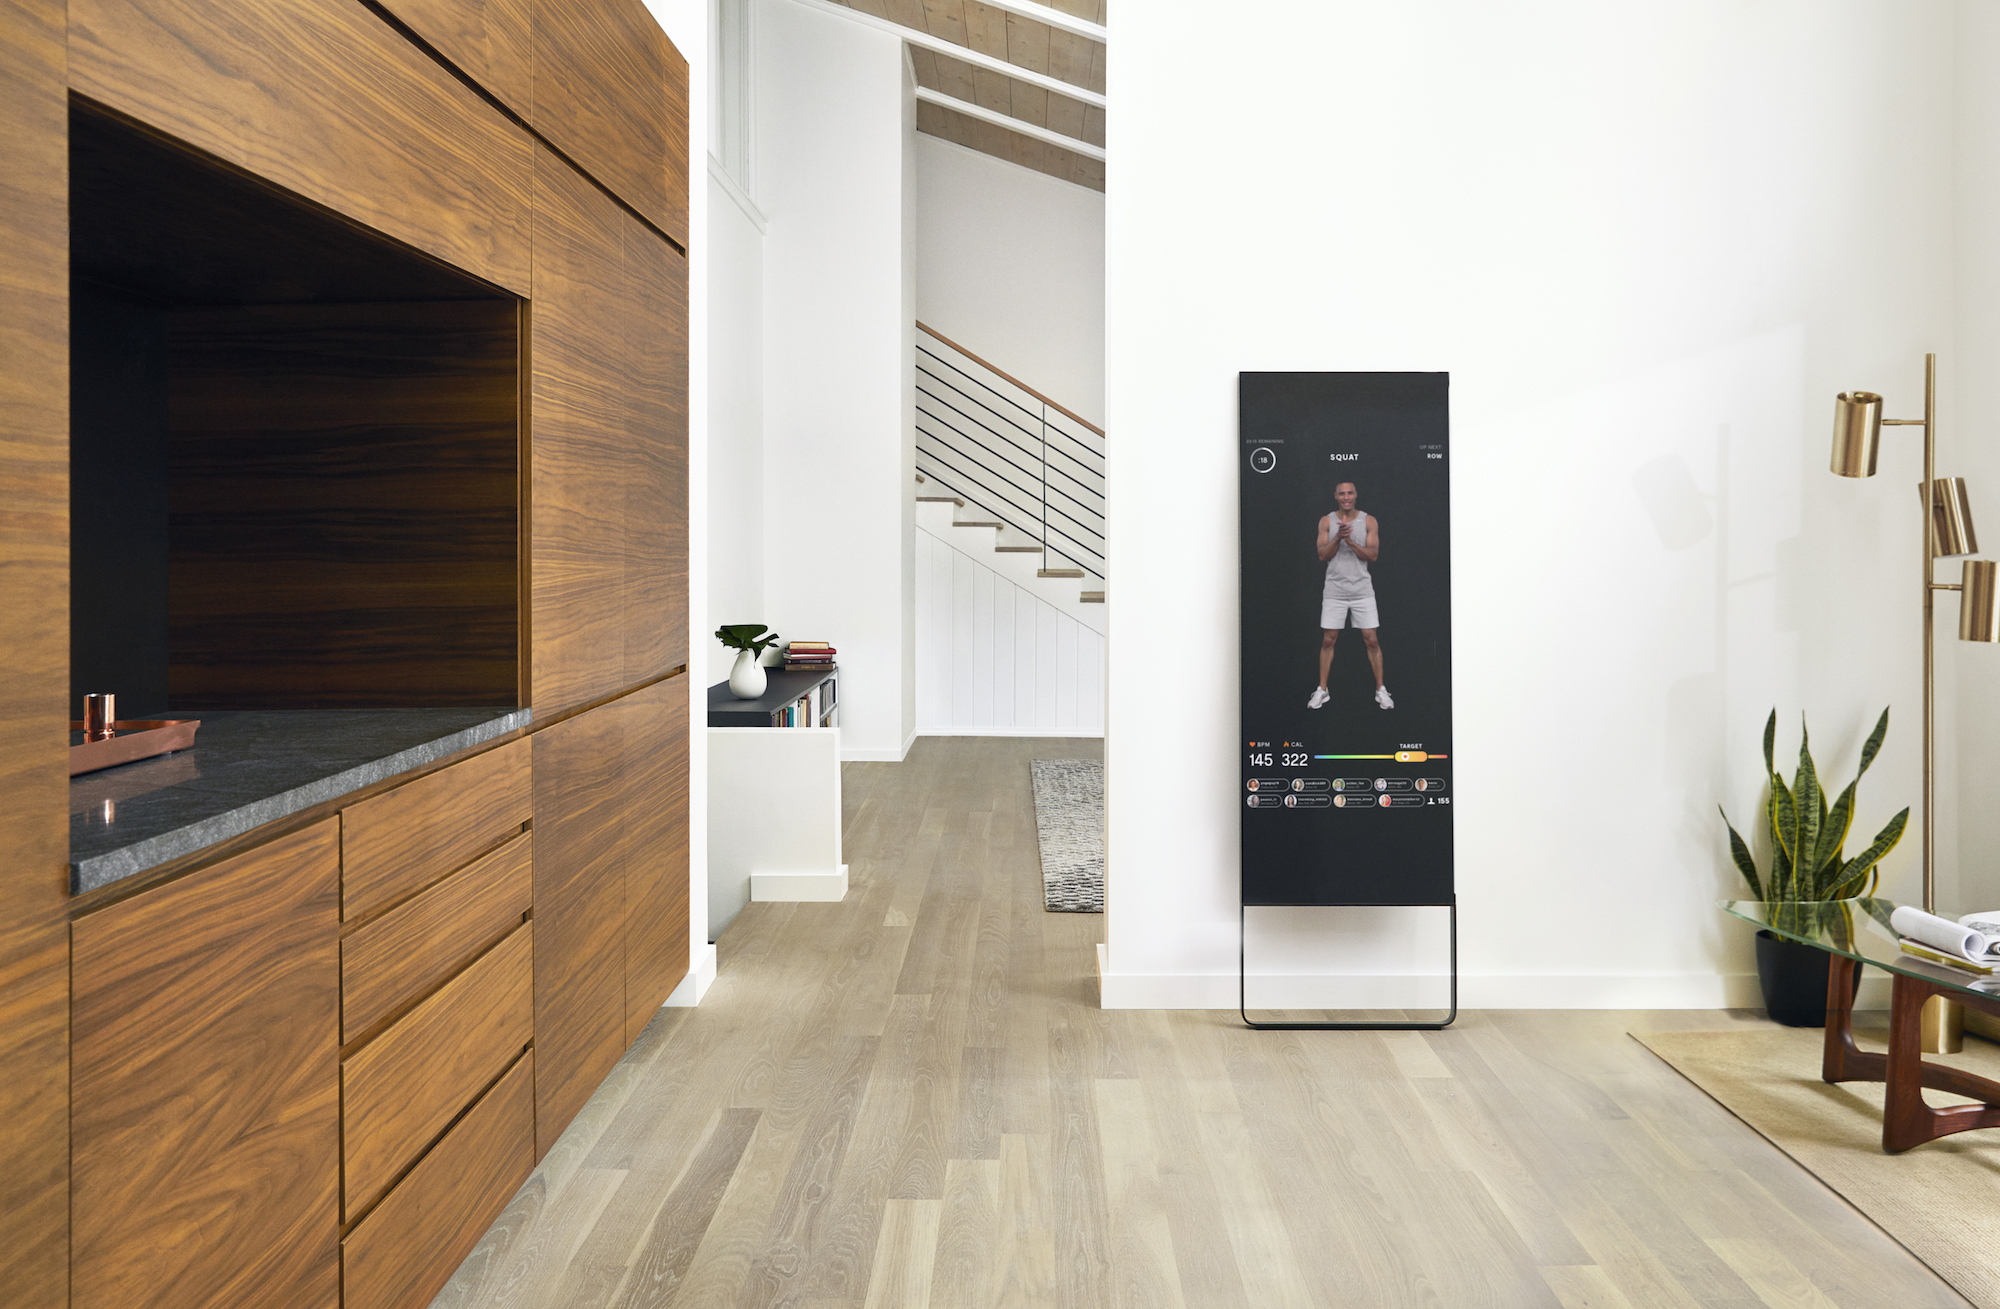 Astonishing A 1 500 Smart Mirror Brings Live Fitness Classes To Your Home Download Free Architecture Designs Rallybritishbridgeorg